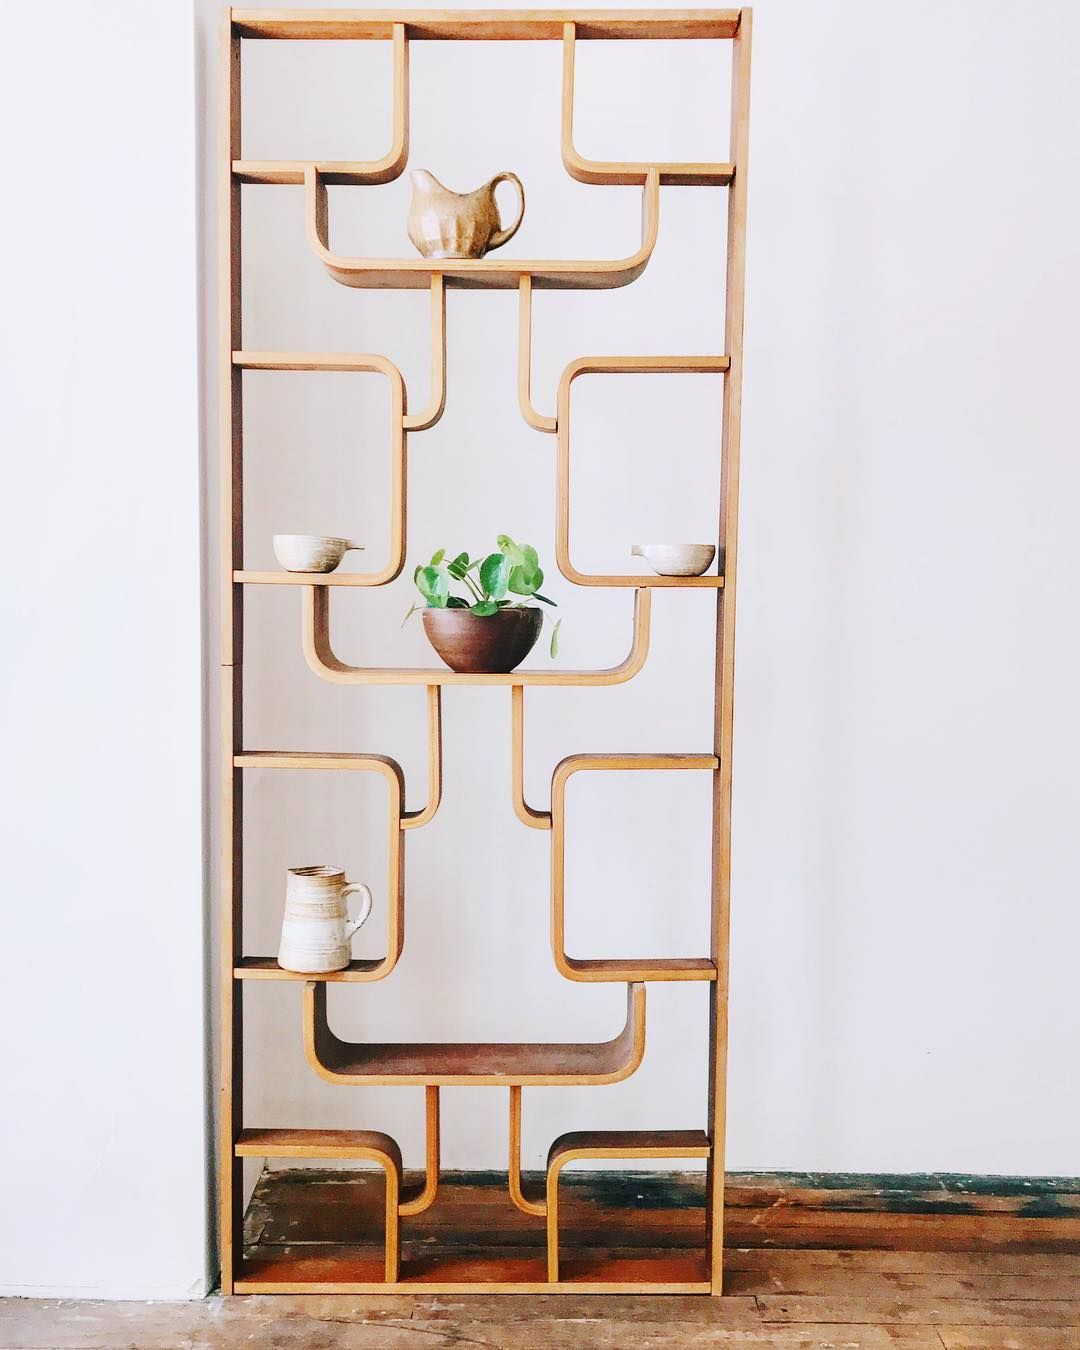 Another peek at the most divine vintage room divider in the shop